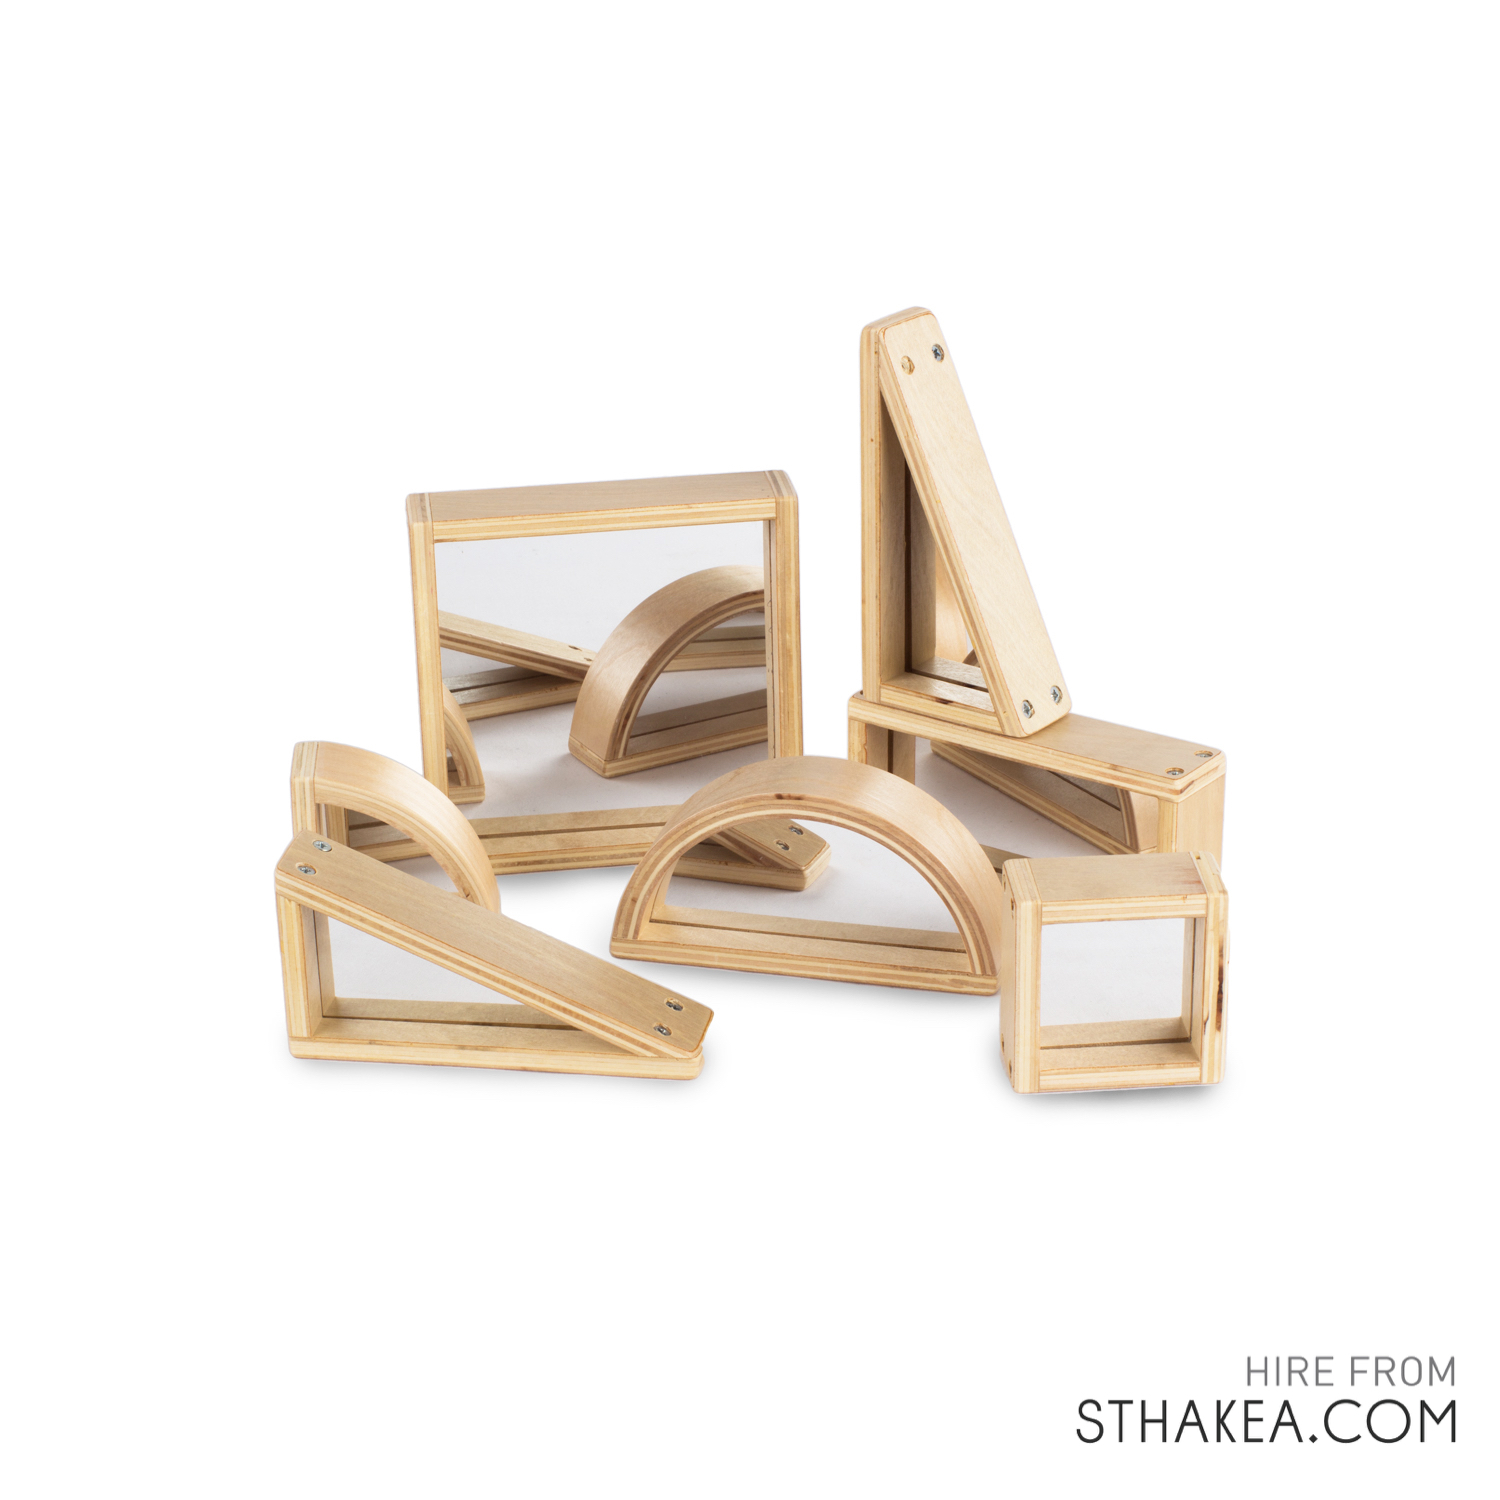 St-Hakea-Melbourne-Event-Hire-Plywood-Mirrored-Building-Block.jpg